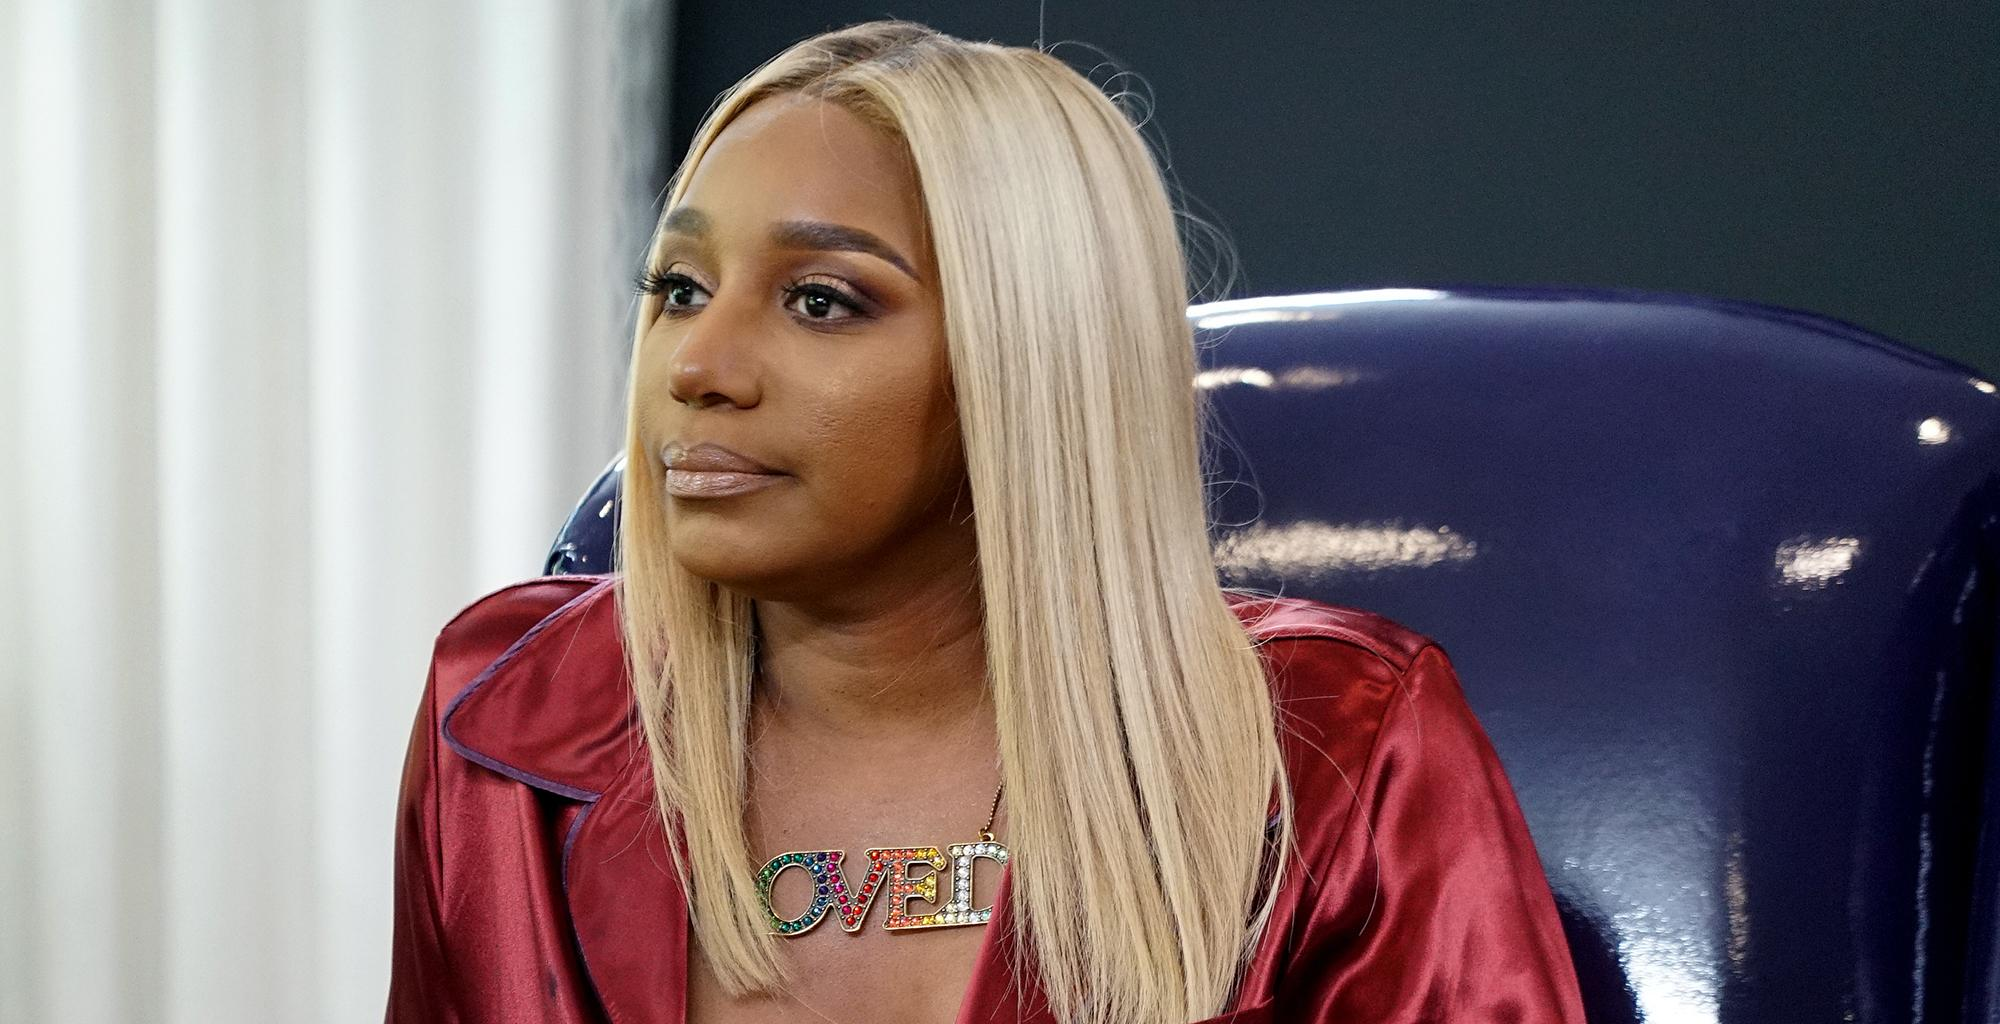 NeNe Leakes Says She's The Boss But Fans Criticize Her For Using Filters For Her Photos